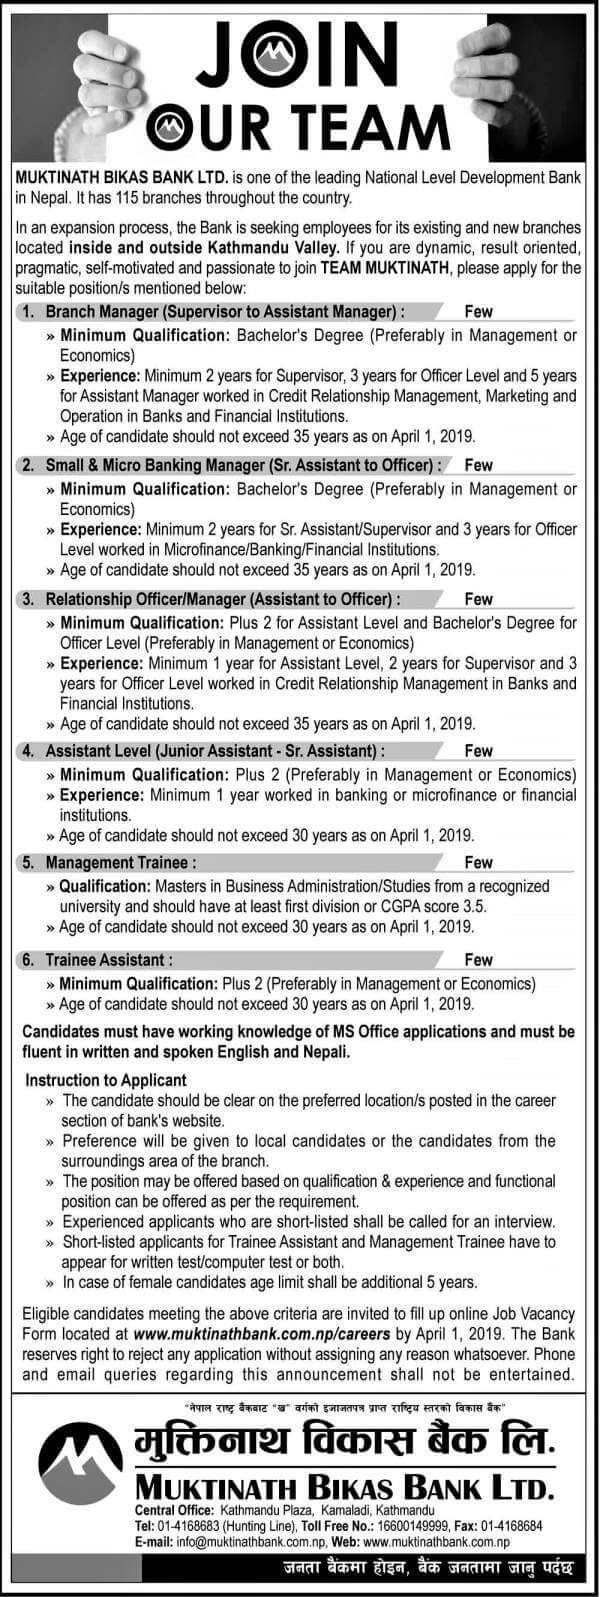 Muktinath Bikas Bank Vacancy